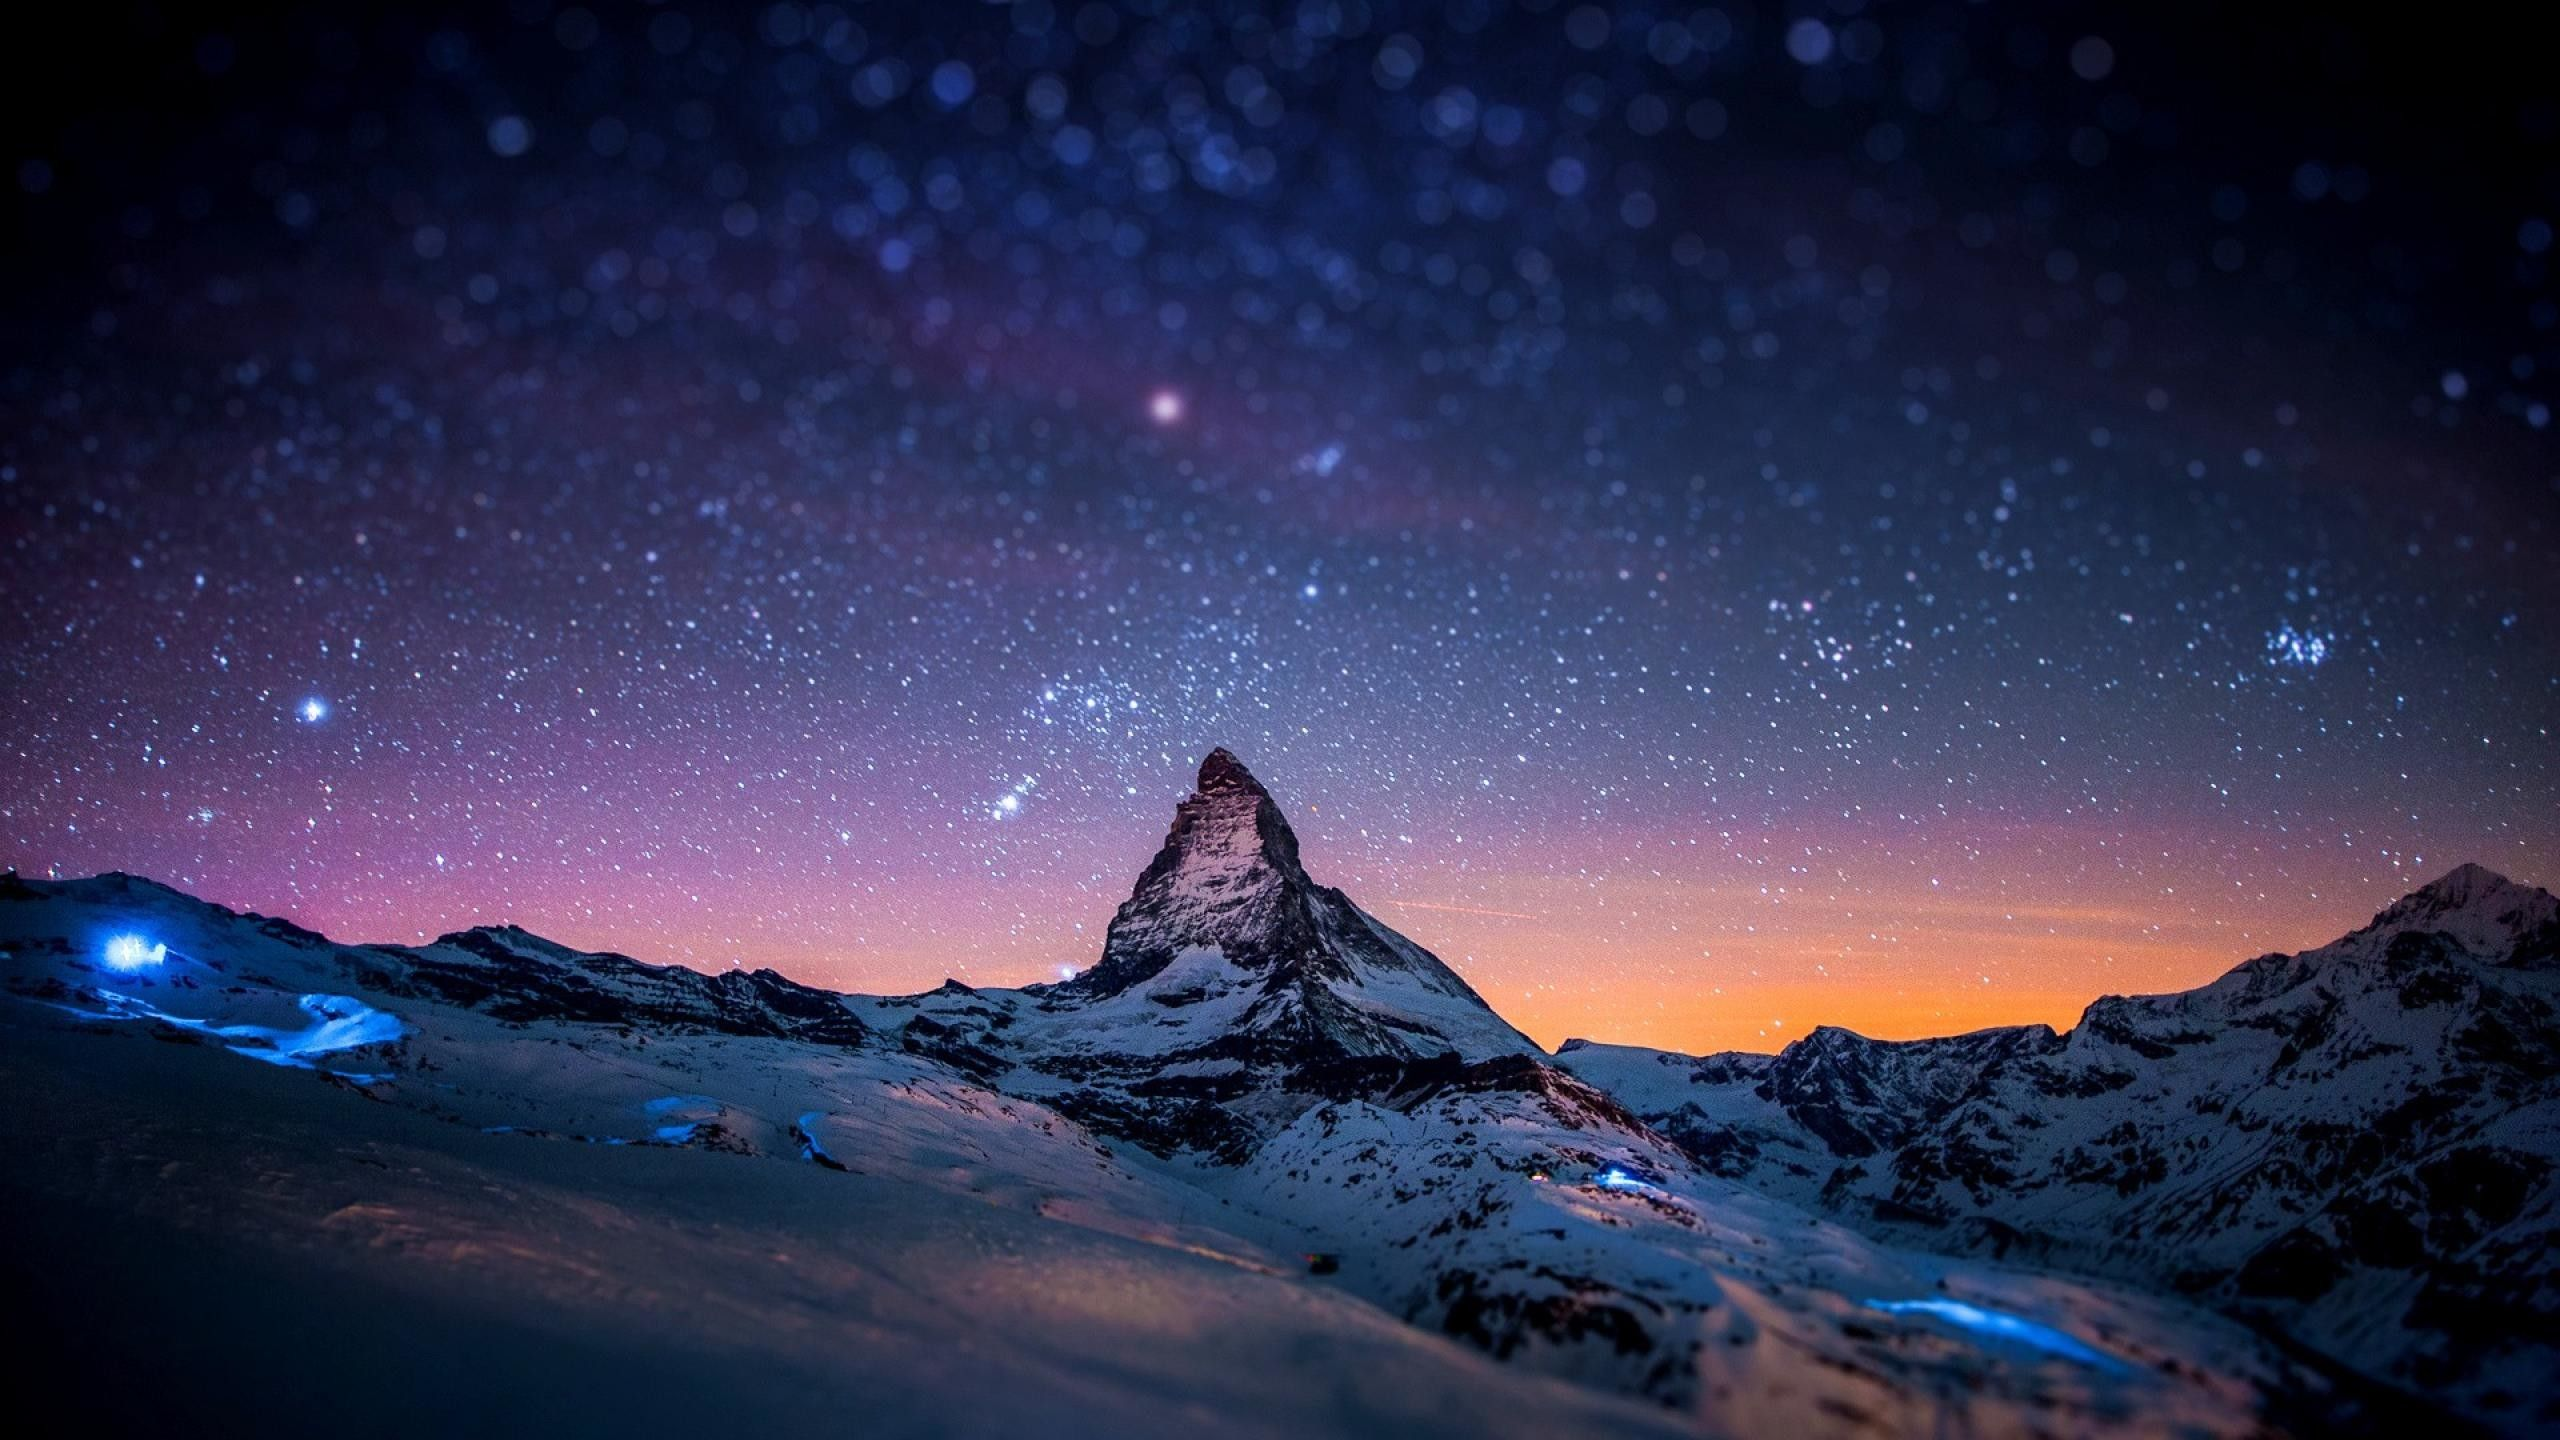 4k Night Sky Wallpaper 37 Images: Night View Of Sky Full Of Stars. Nature Wallpapers